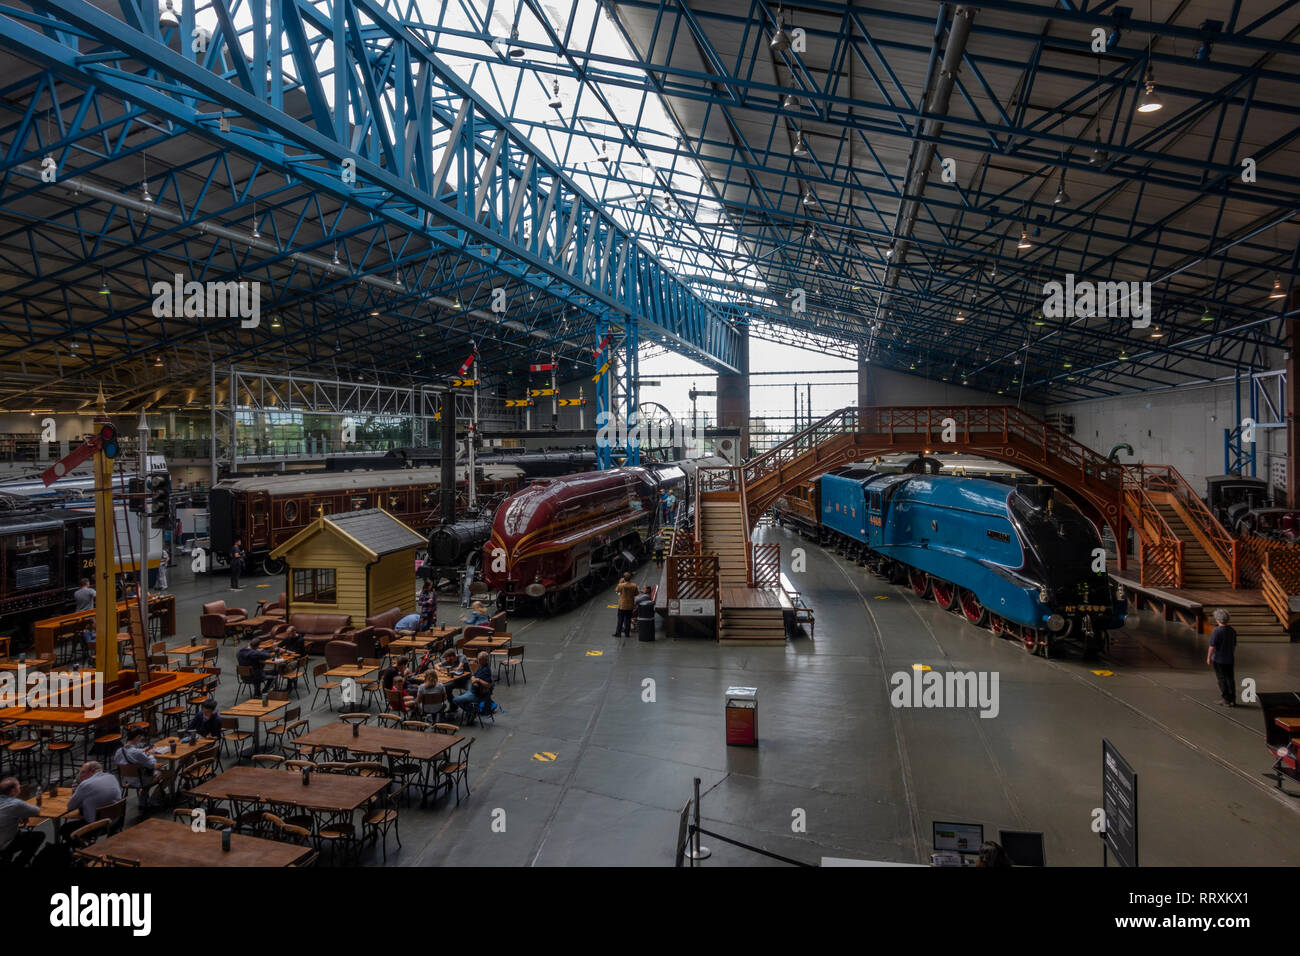 General view of the Main Hall featuring the Mallard (blue Loco on the right), National Railway Museum, York, UK. - Stock Image